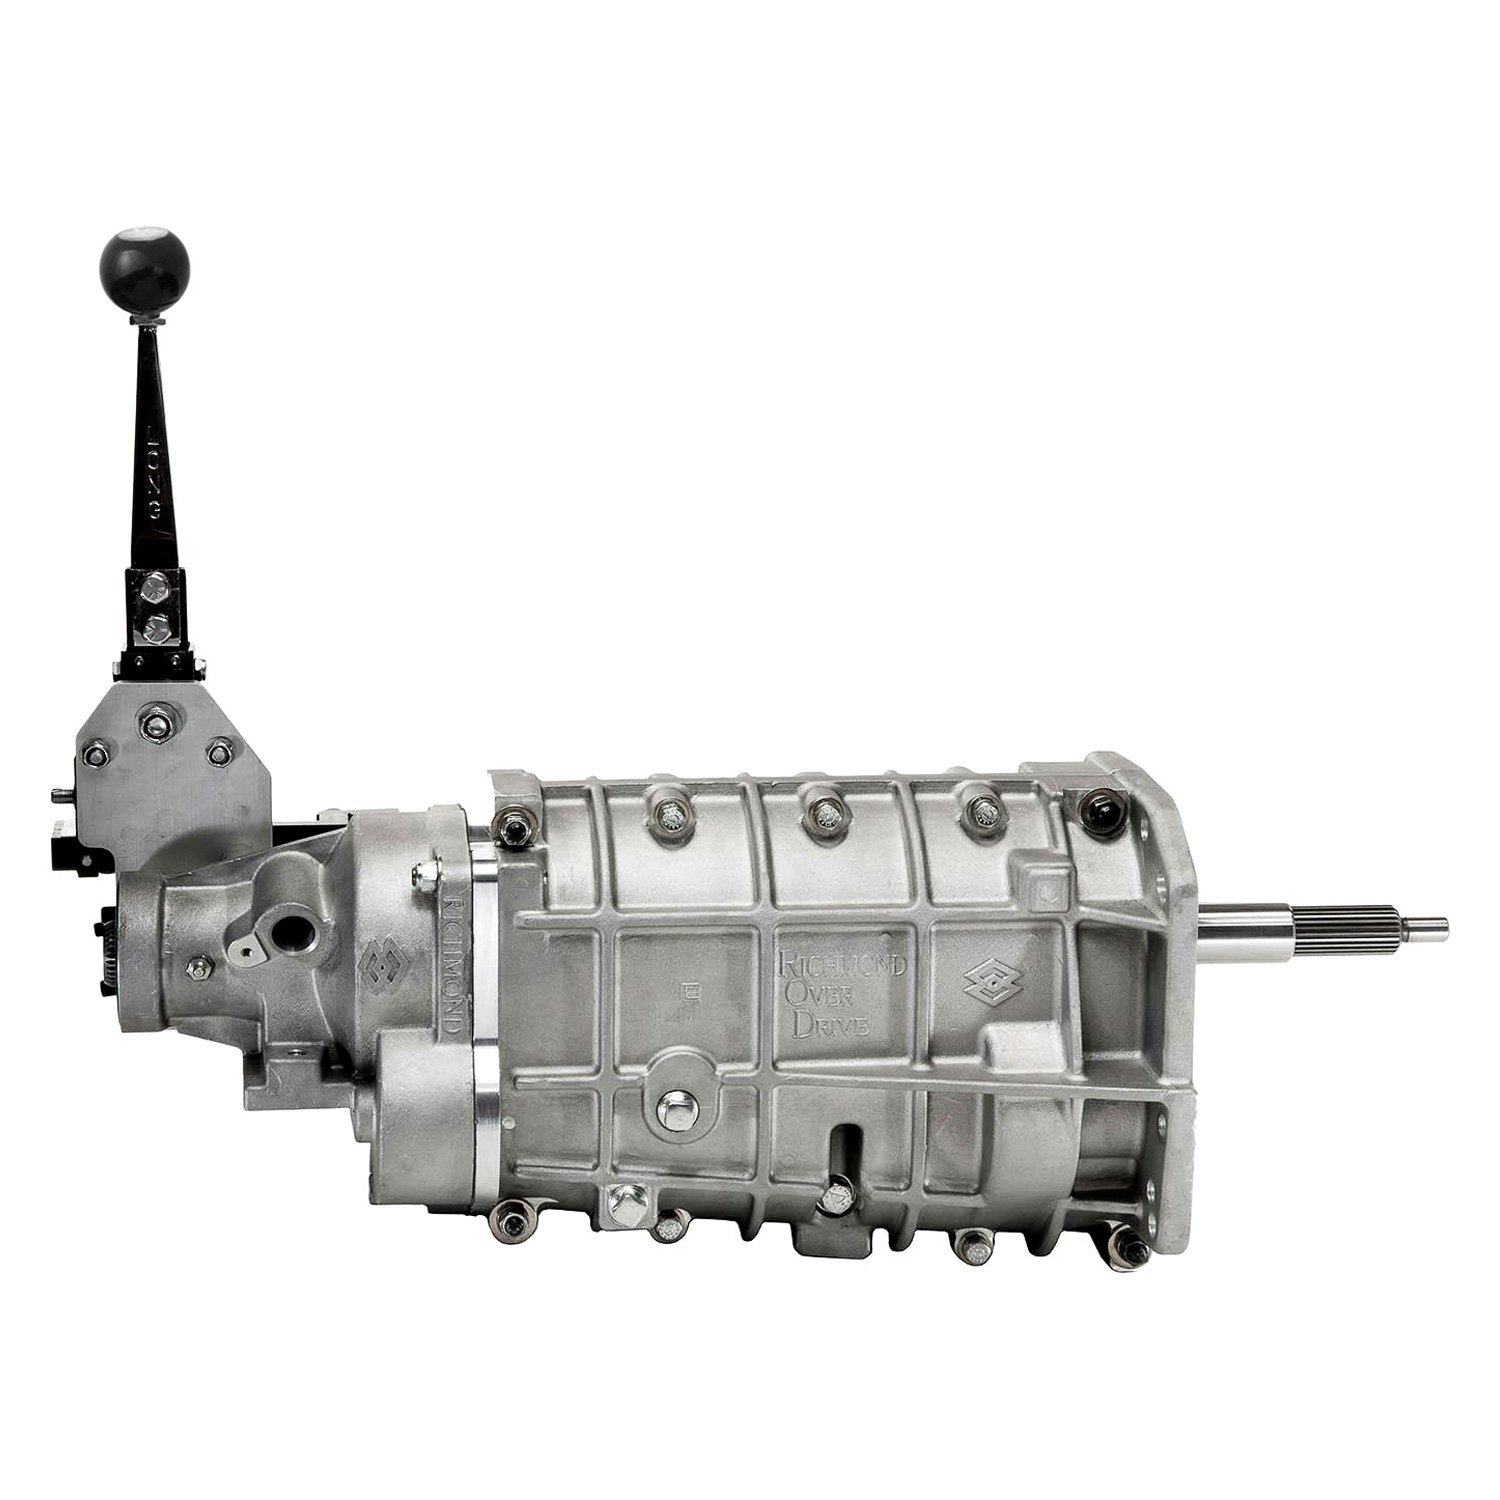 5 speed manual transmission for chevy 350-6609